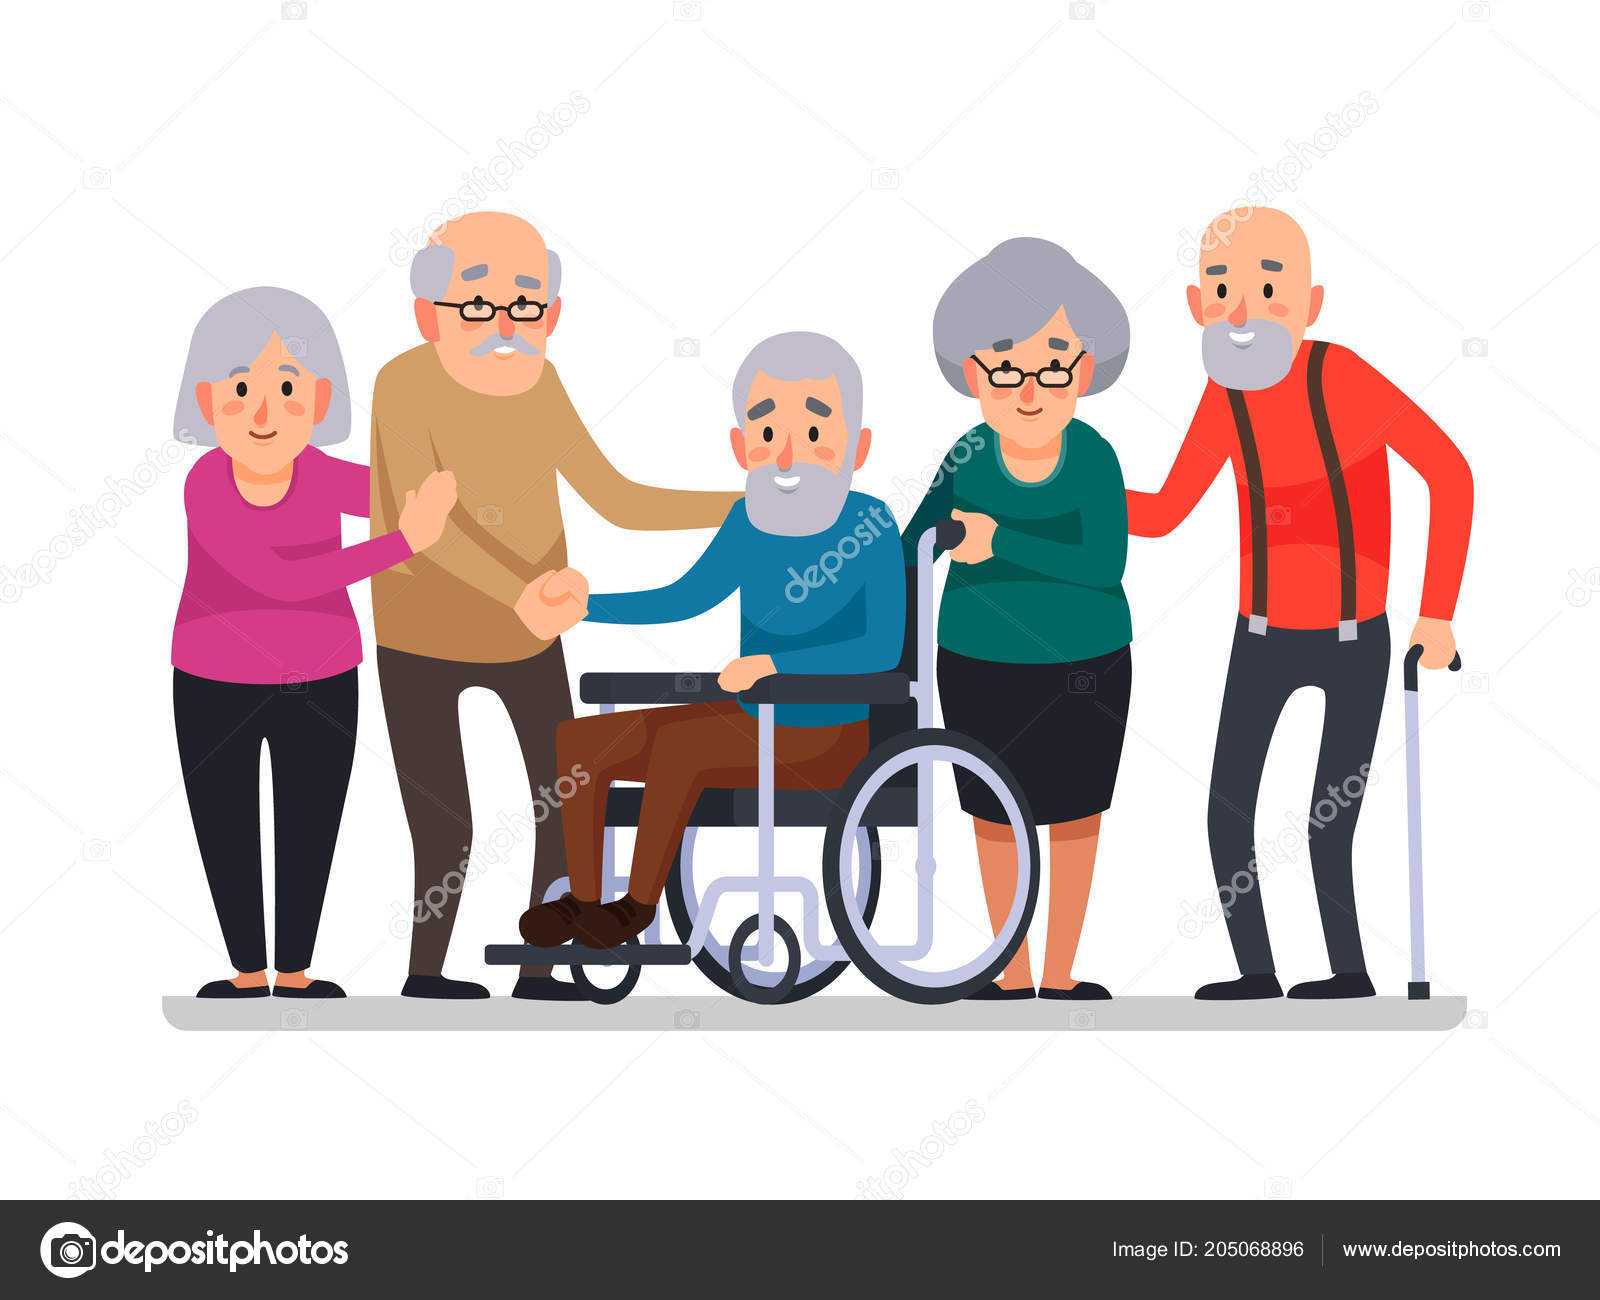 Image of: Scooter Cartoon Old People Happy Aged Citizens Disabled Senior On Older Wheelchair And Care Seniors Smiling Elder Age Couple Elderly Citizen Happy With Cane Depositphotos Cartoon Old People Happy Aged Citizens Disabled Senior On